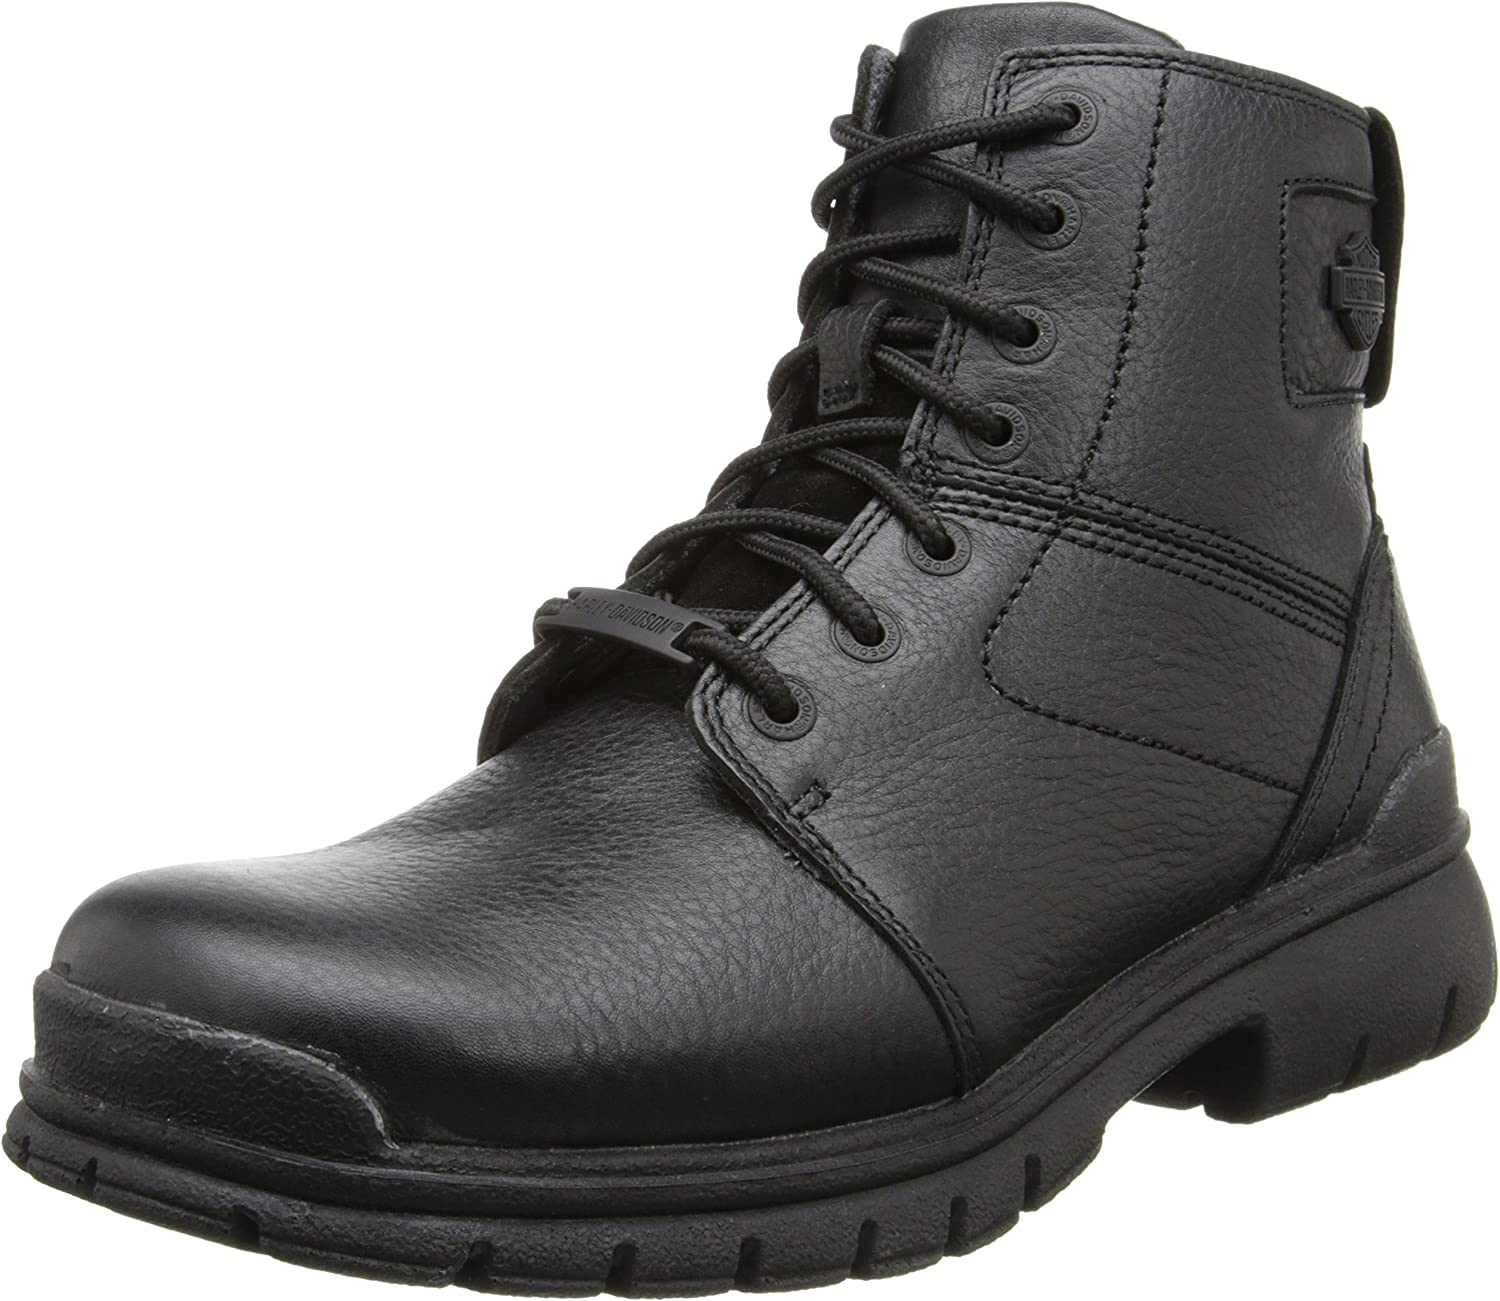 Harley-Davidson Men's Gage Boot Black